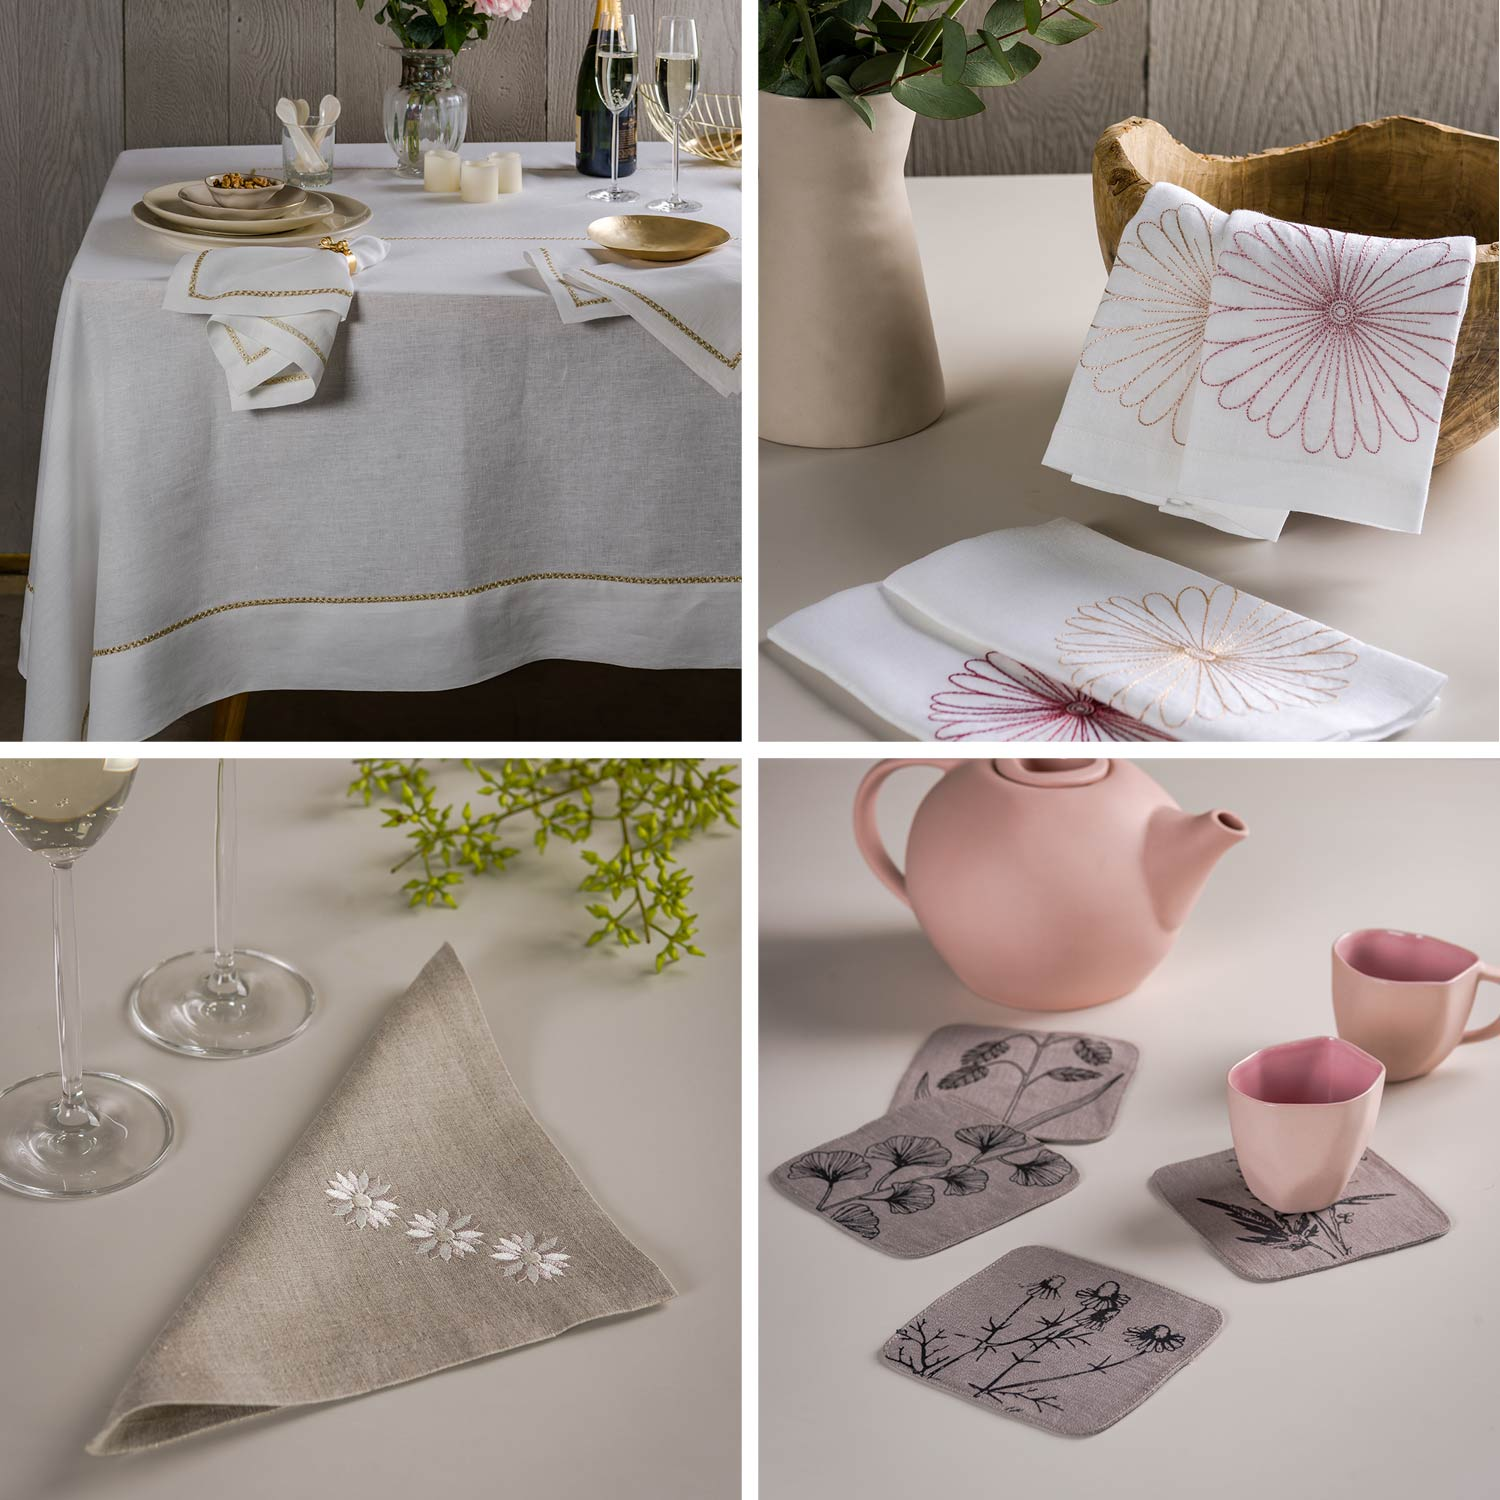 Invest in Quality Linens to set a beautiful table